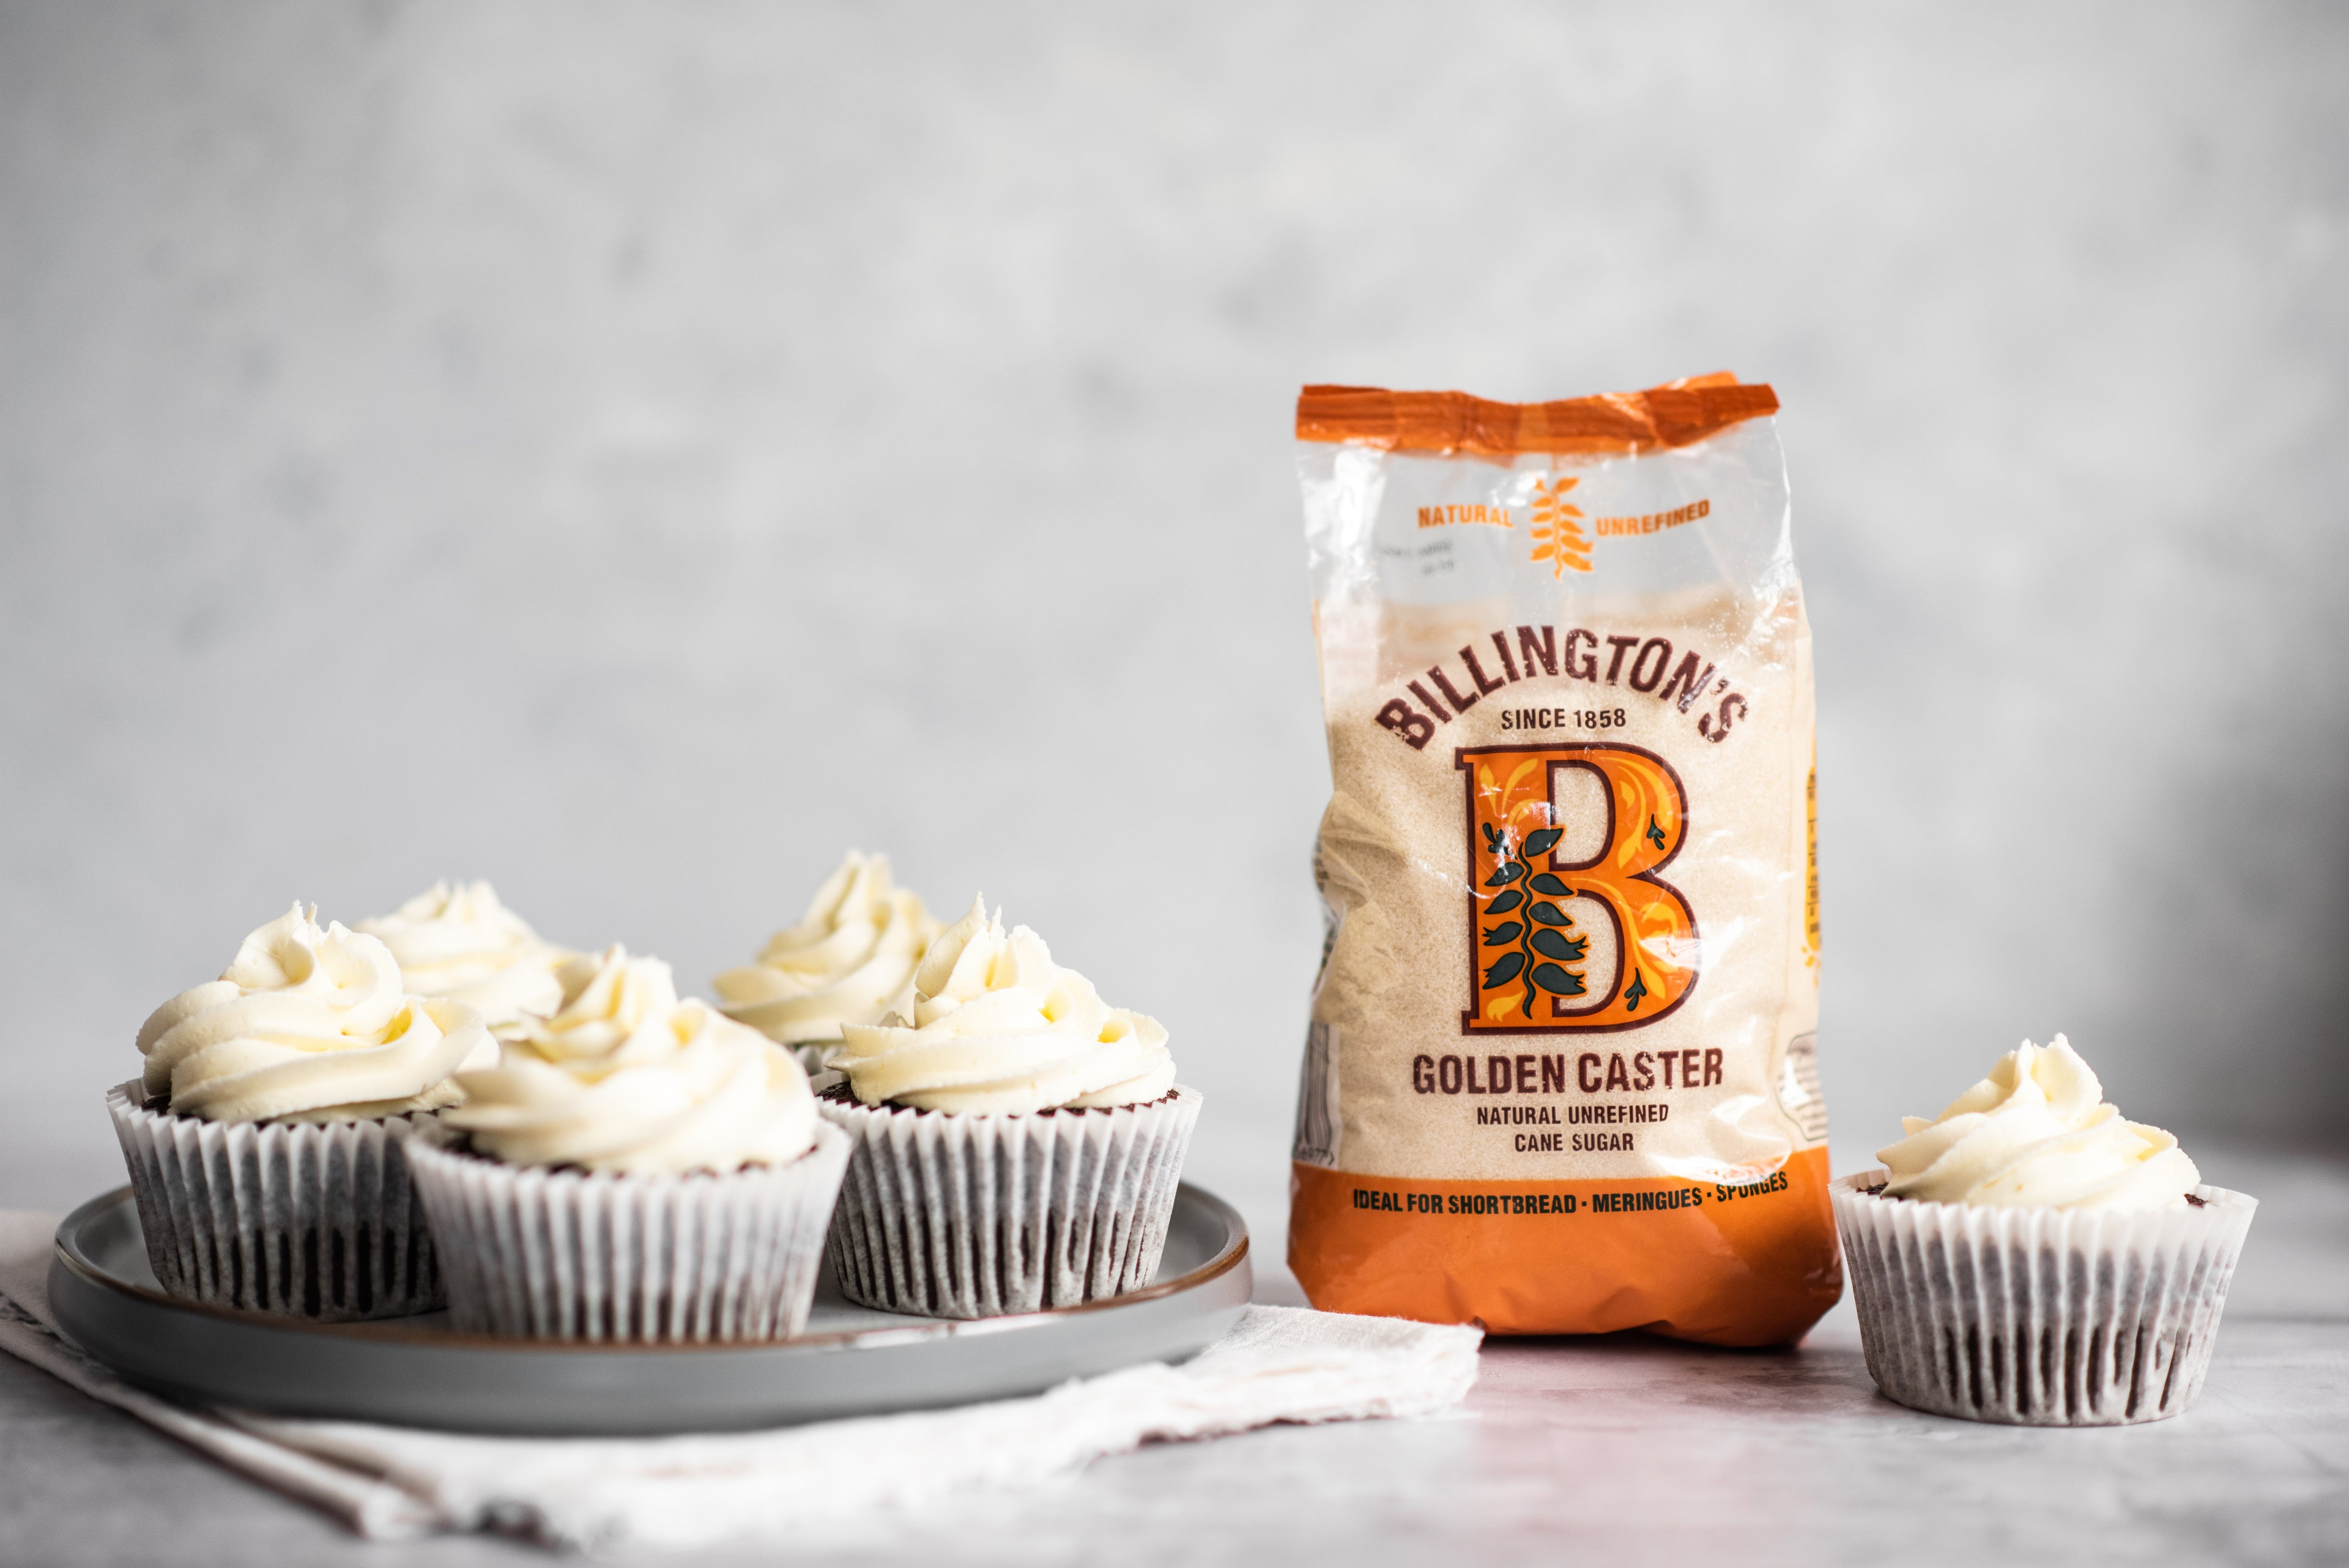 Cupcakes with a bag of sugar next to it